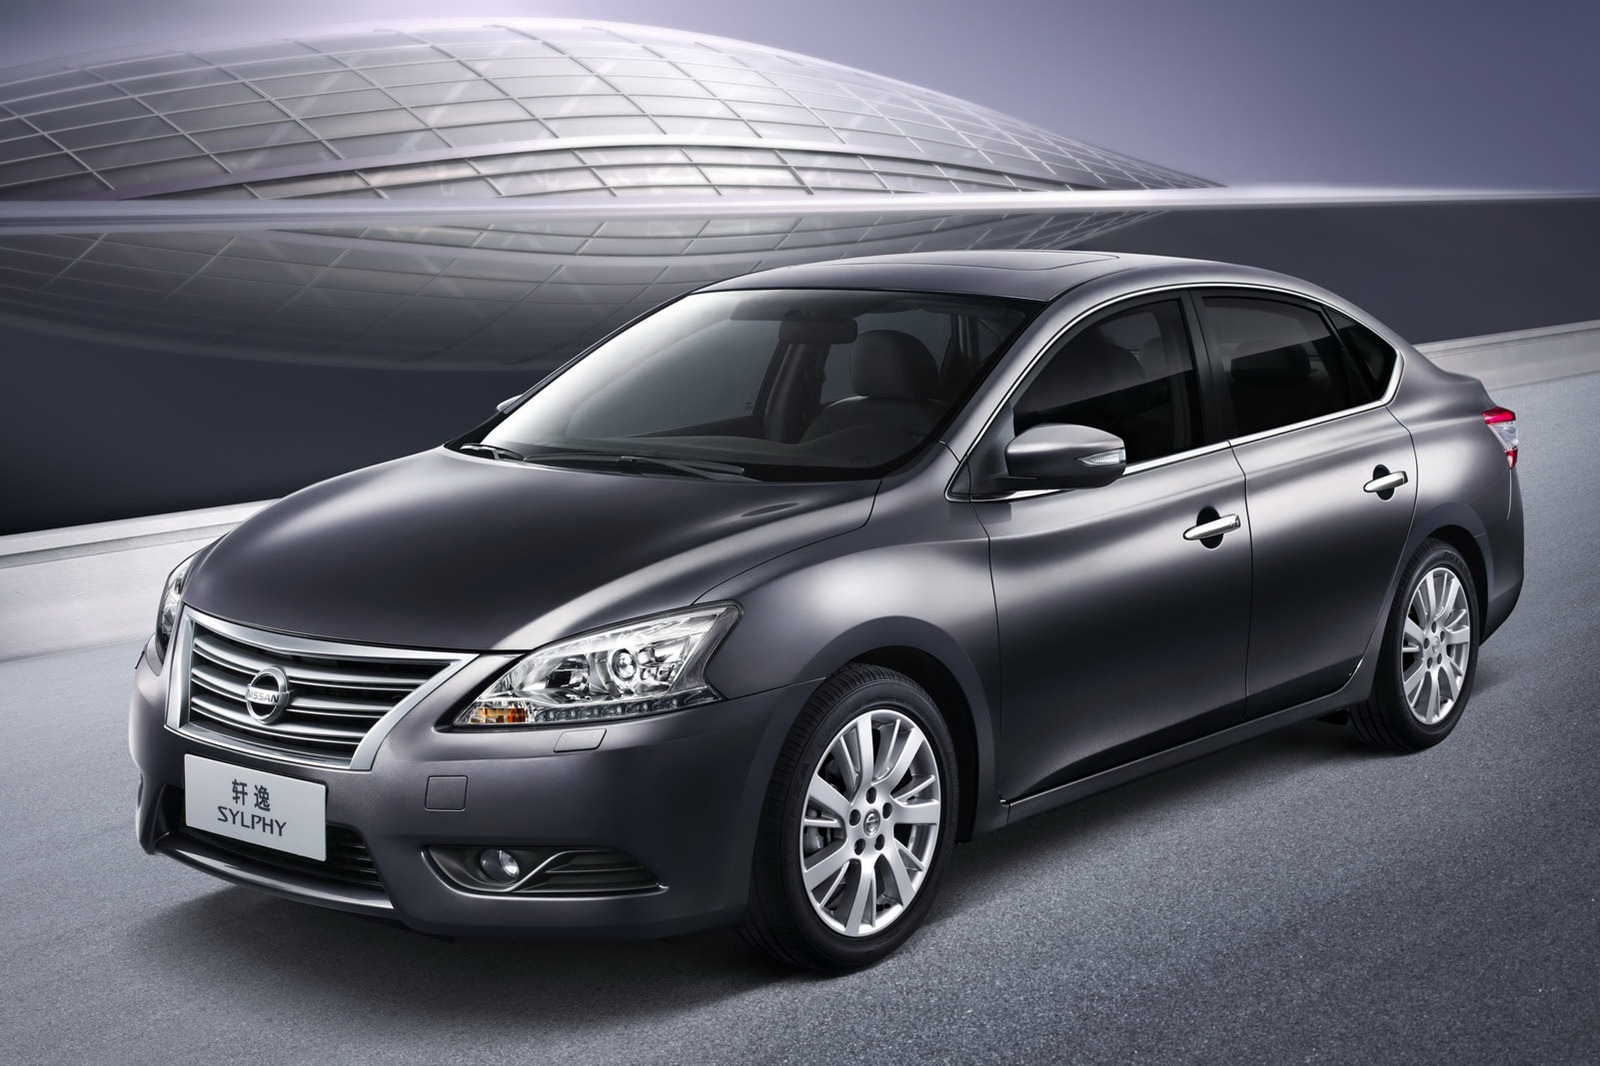 2013 Nissan Sentra Previewed By Sylphy Model At Beijing ...